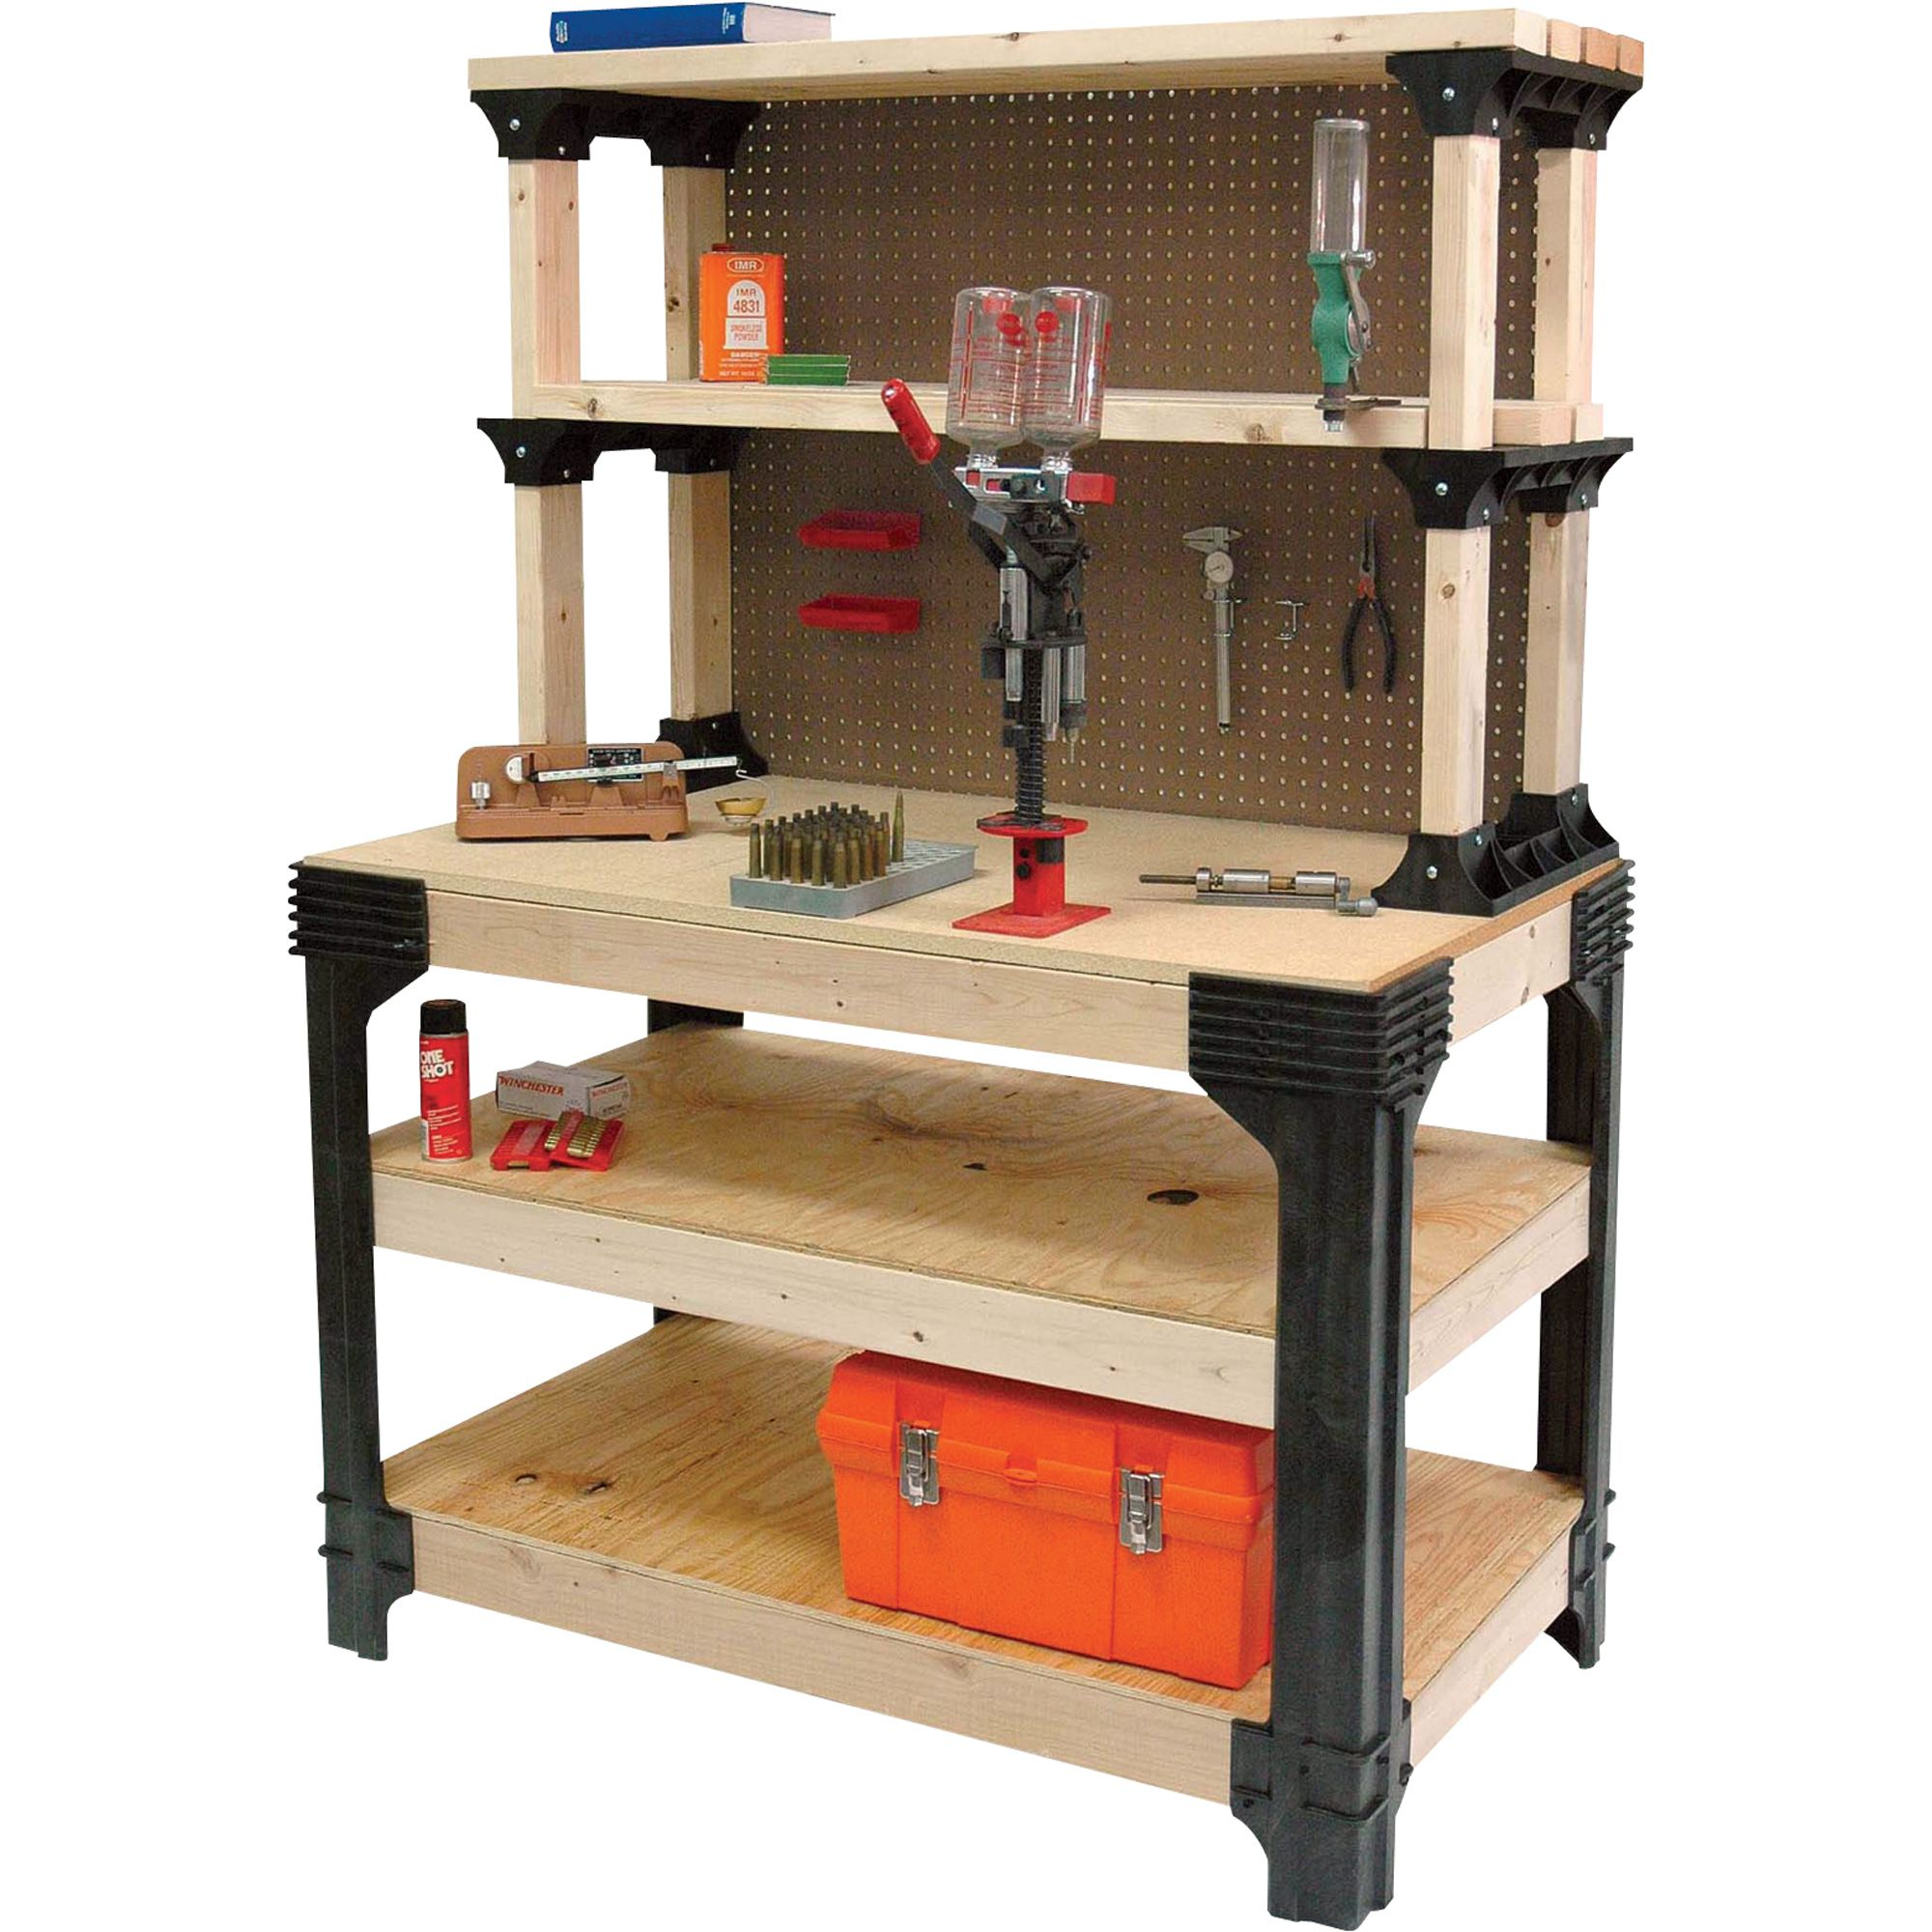 2x4 Basics Anysize Workbench Kit With Shelflinks Model 90164mi 2x4 Basics Rolling Workbench